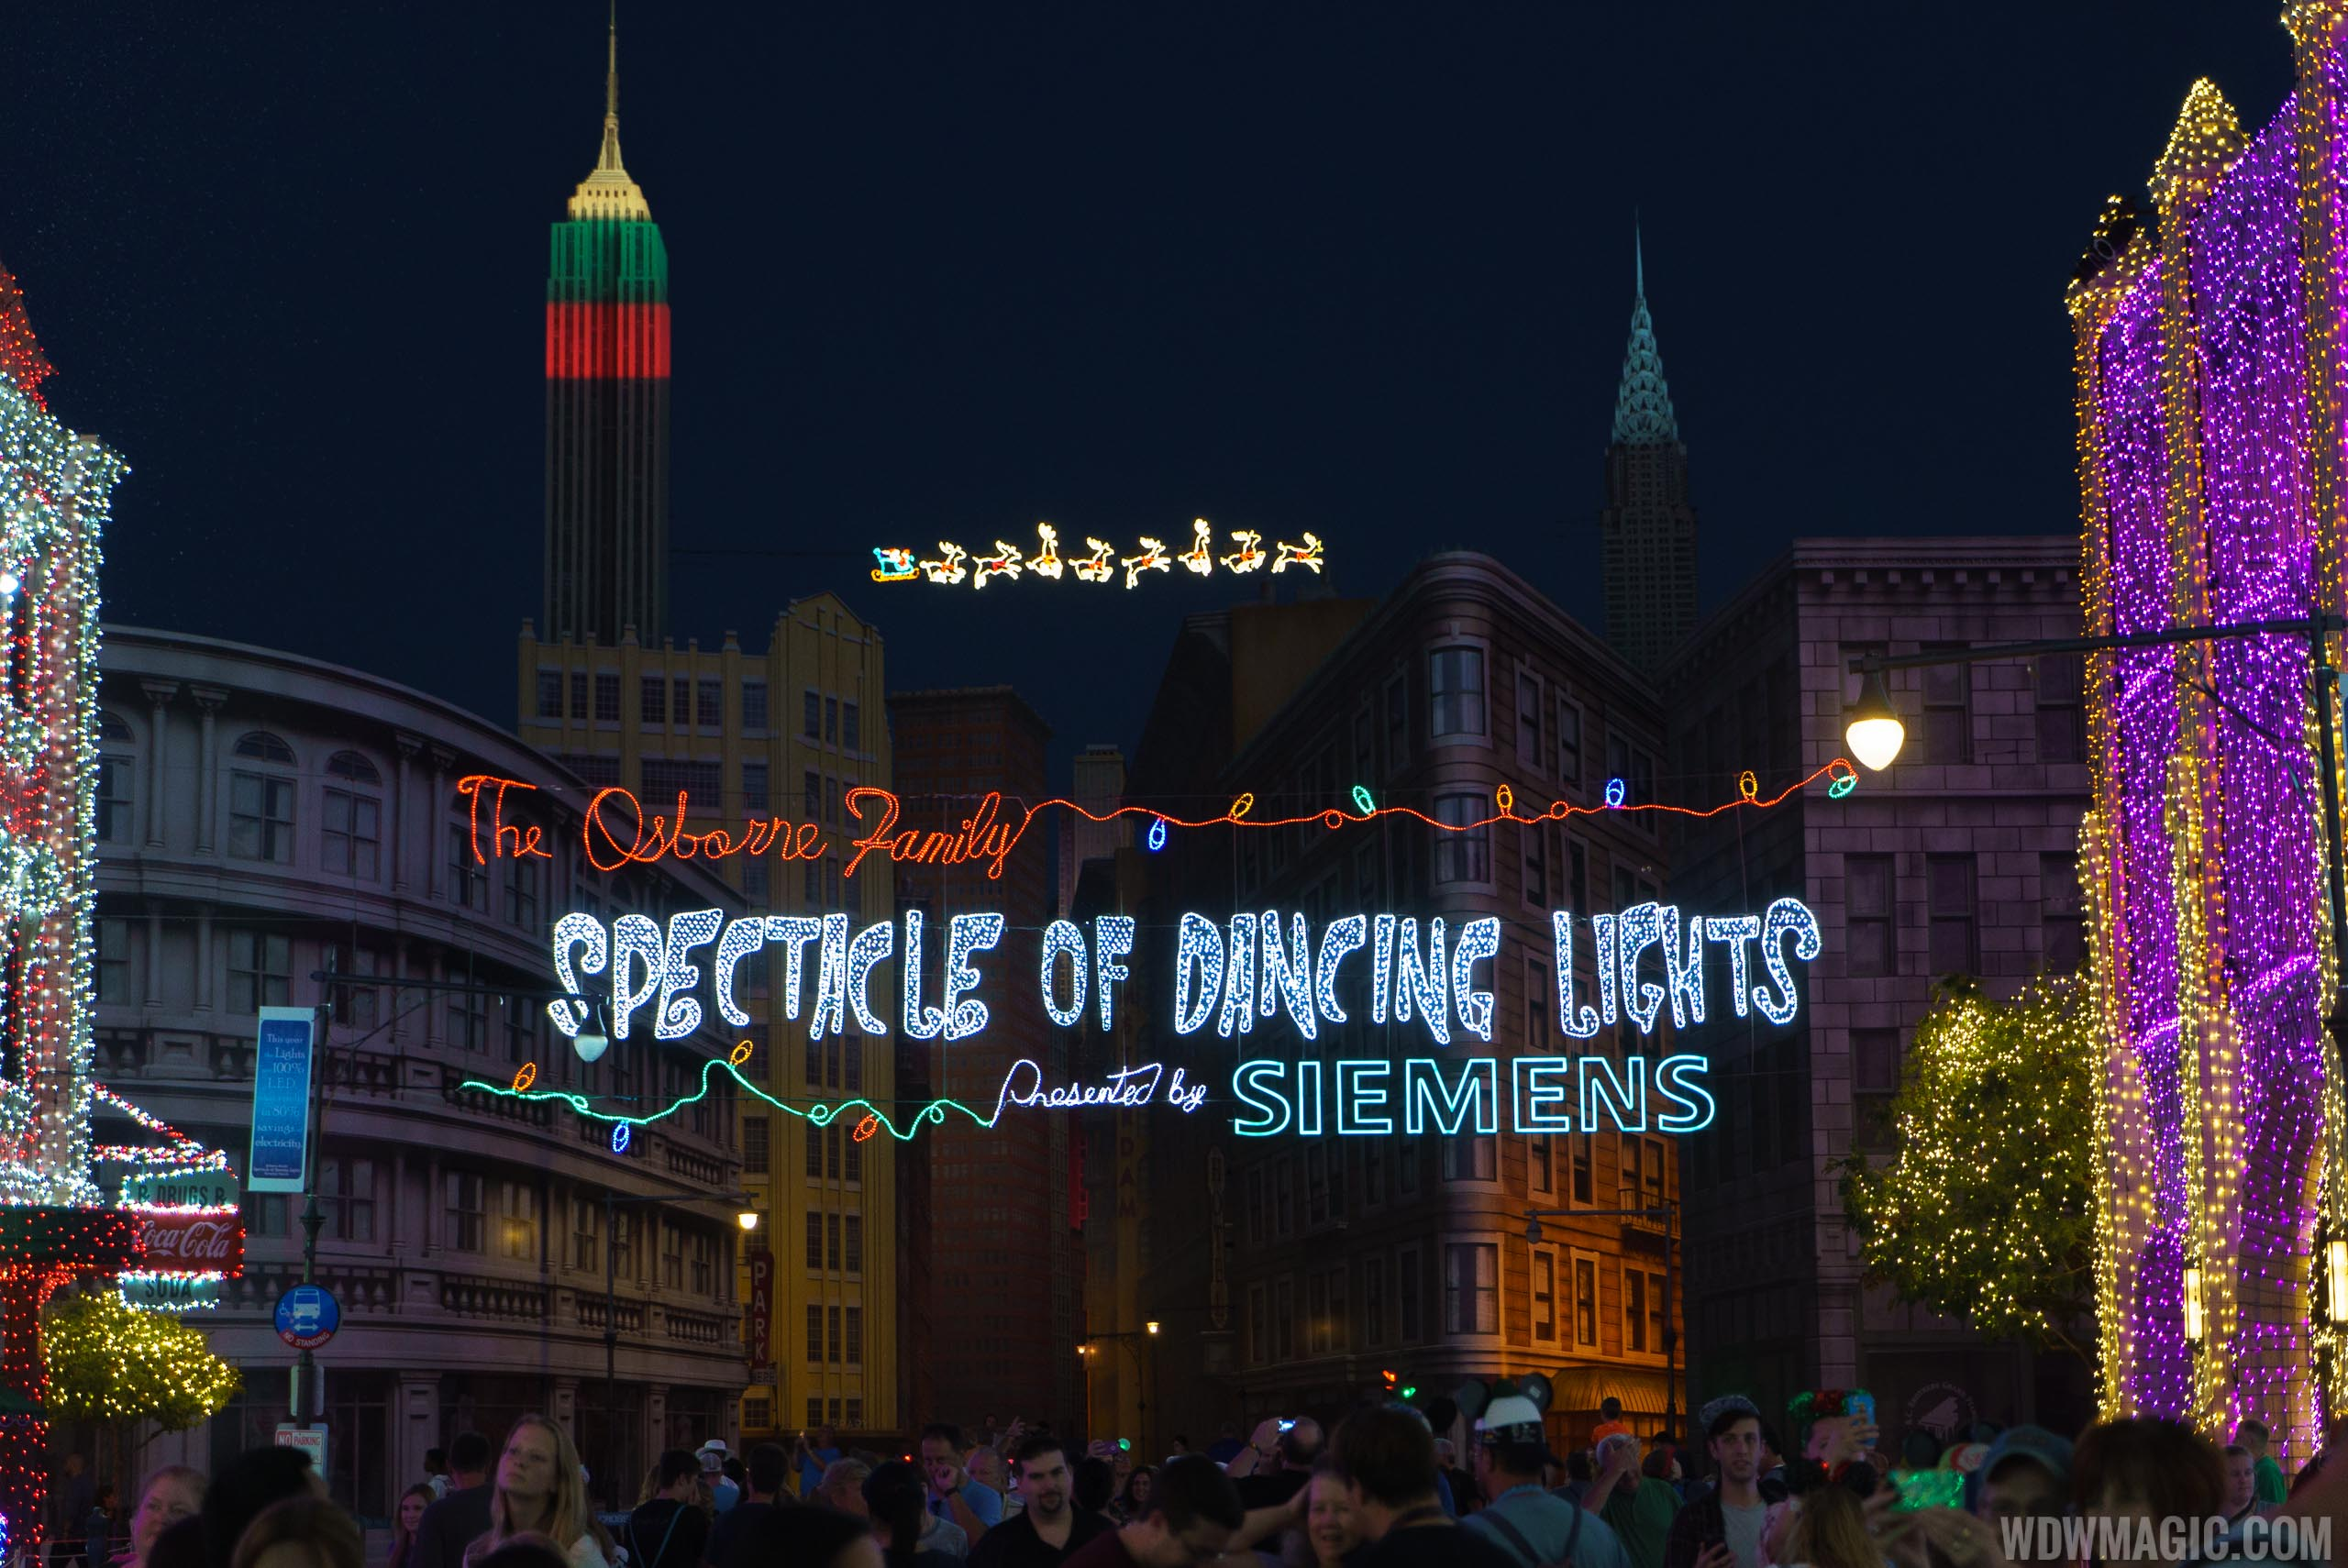 Osborne Family Spectacle of Dancing Lights 2015 show